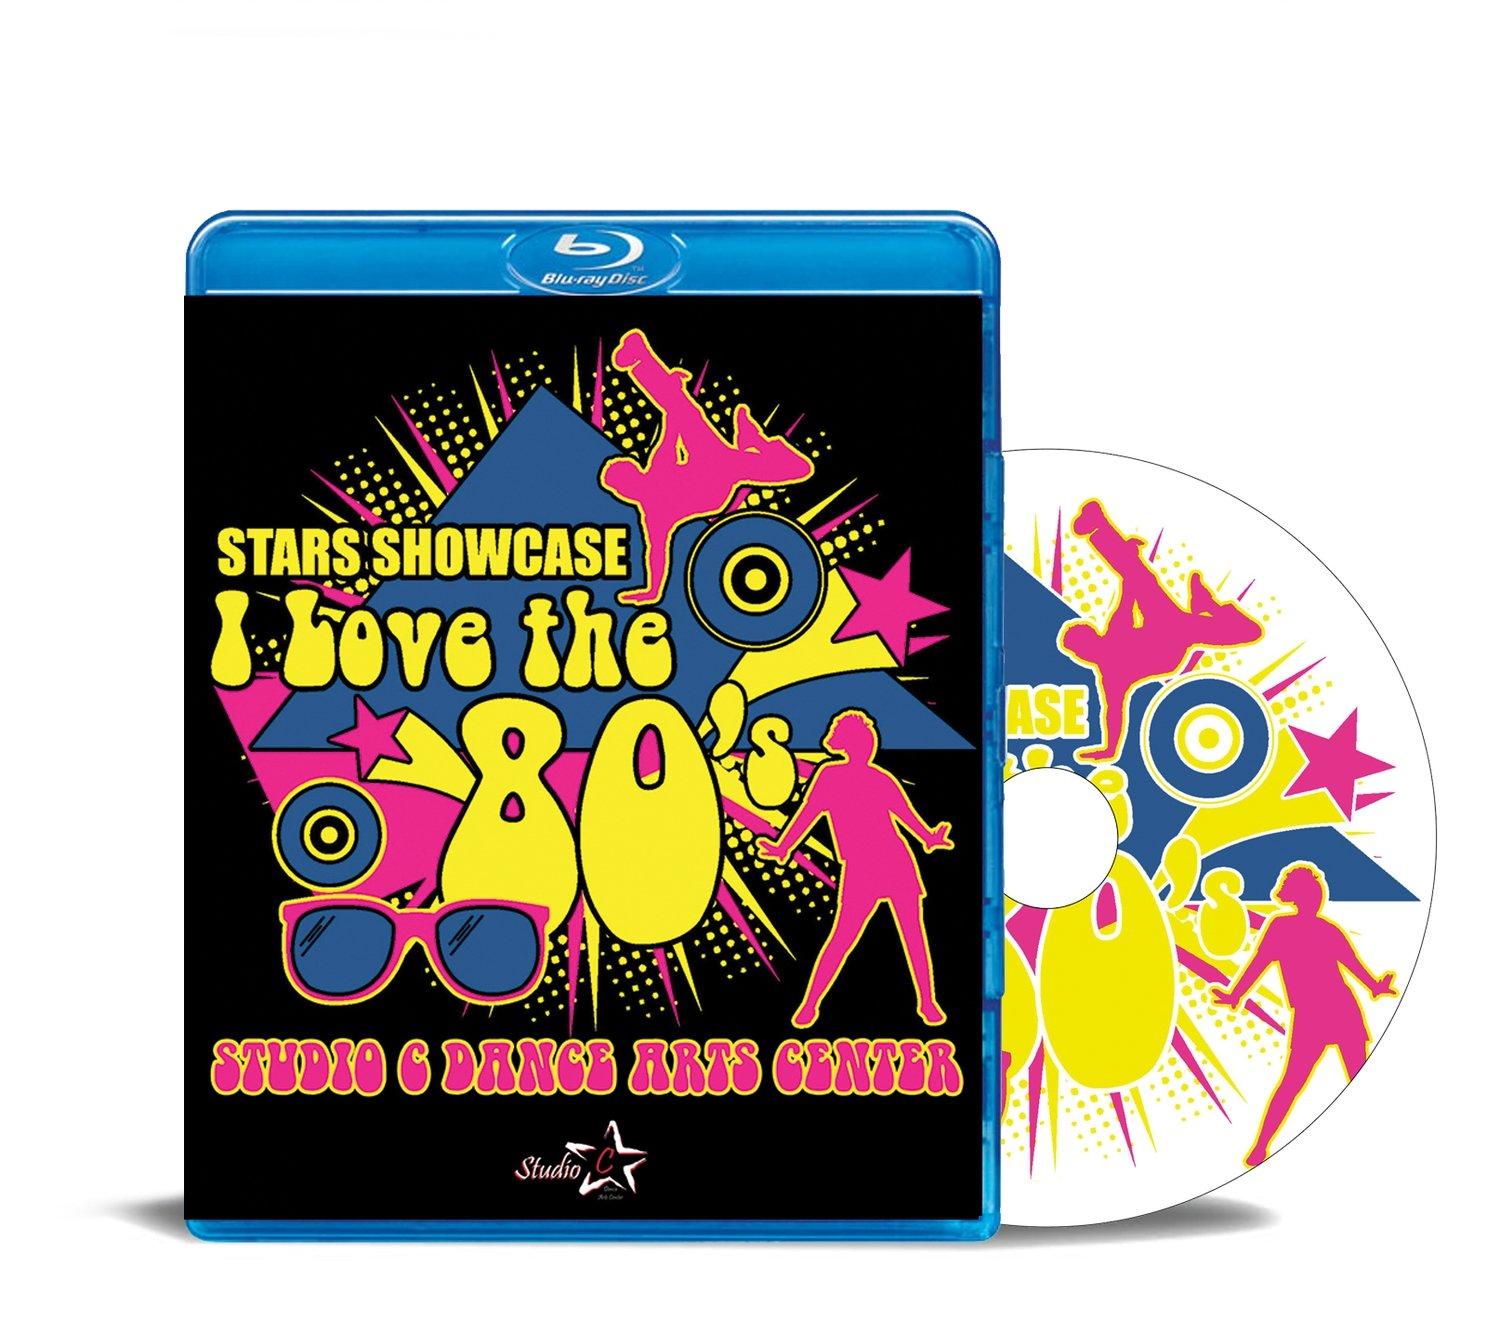 Stars Showcase I Love the 80's Blu-ray 2017